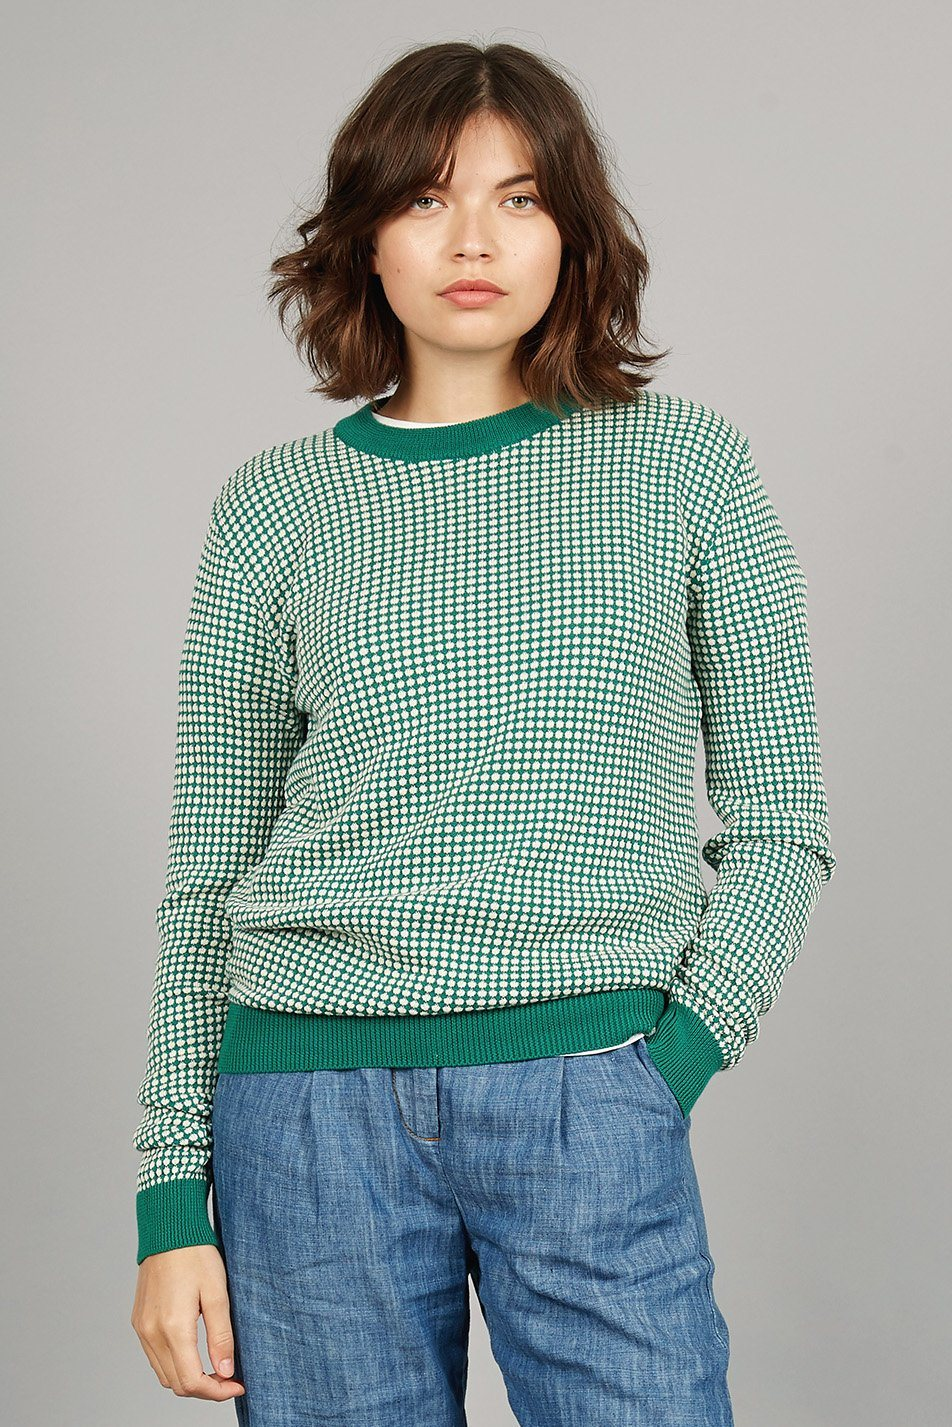 HANA Organic Cotton Jumper Emerald - Komodo Fashion